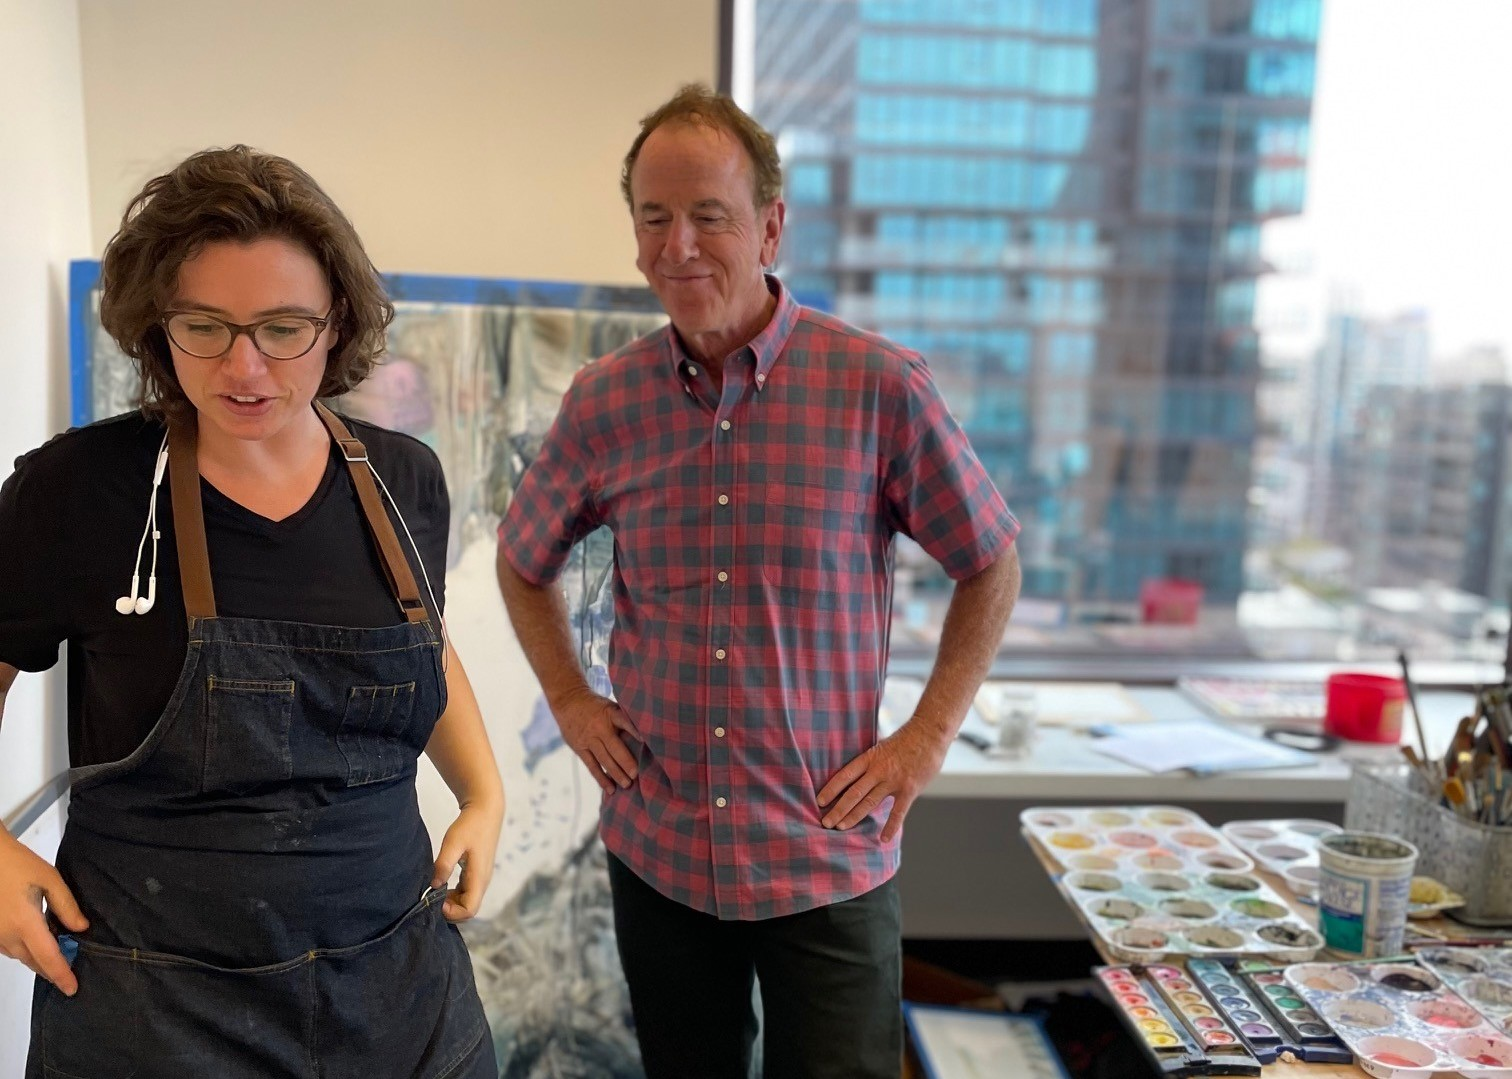 Artist Molly Segal (L) and firm founder John Quinn (R). Photo courtesy of Alexis Hyde